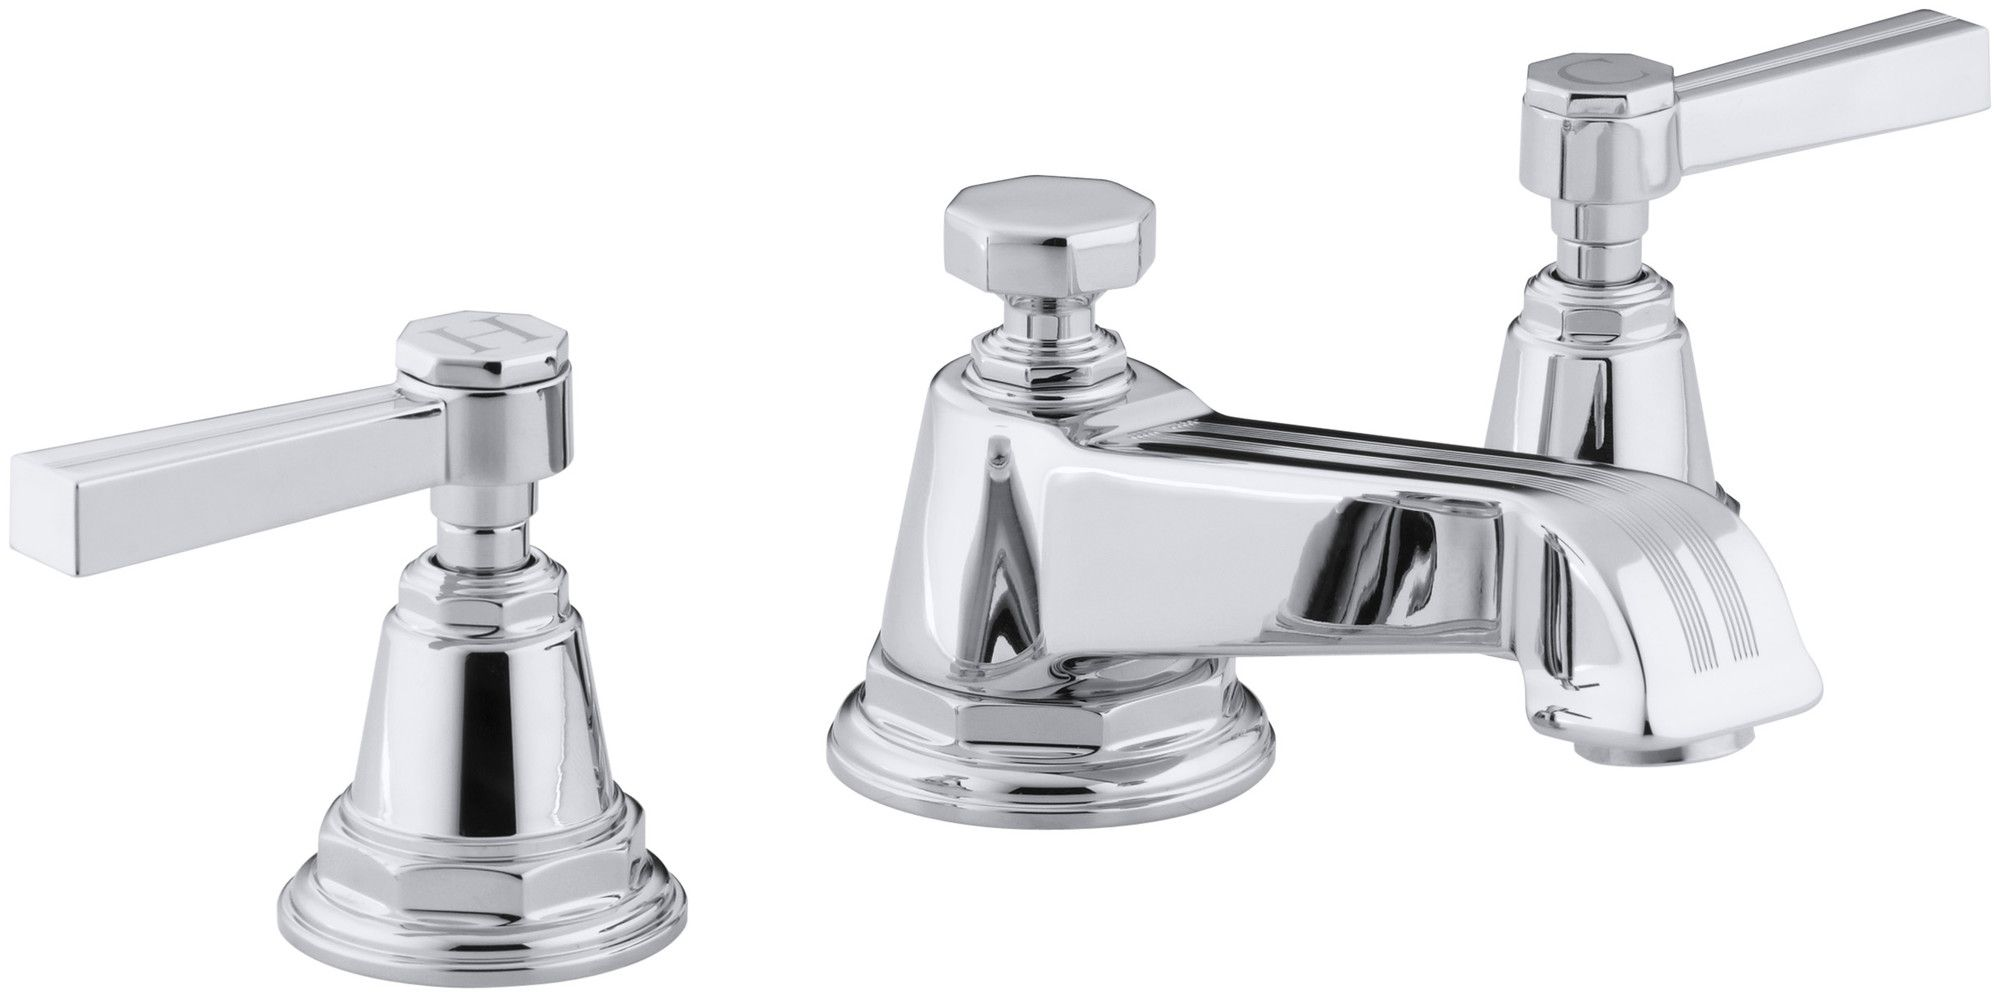 Features: Product Type: -Standard bathroom faucet. Finish: -Chrome ...